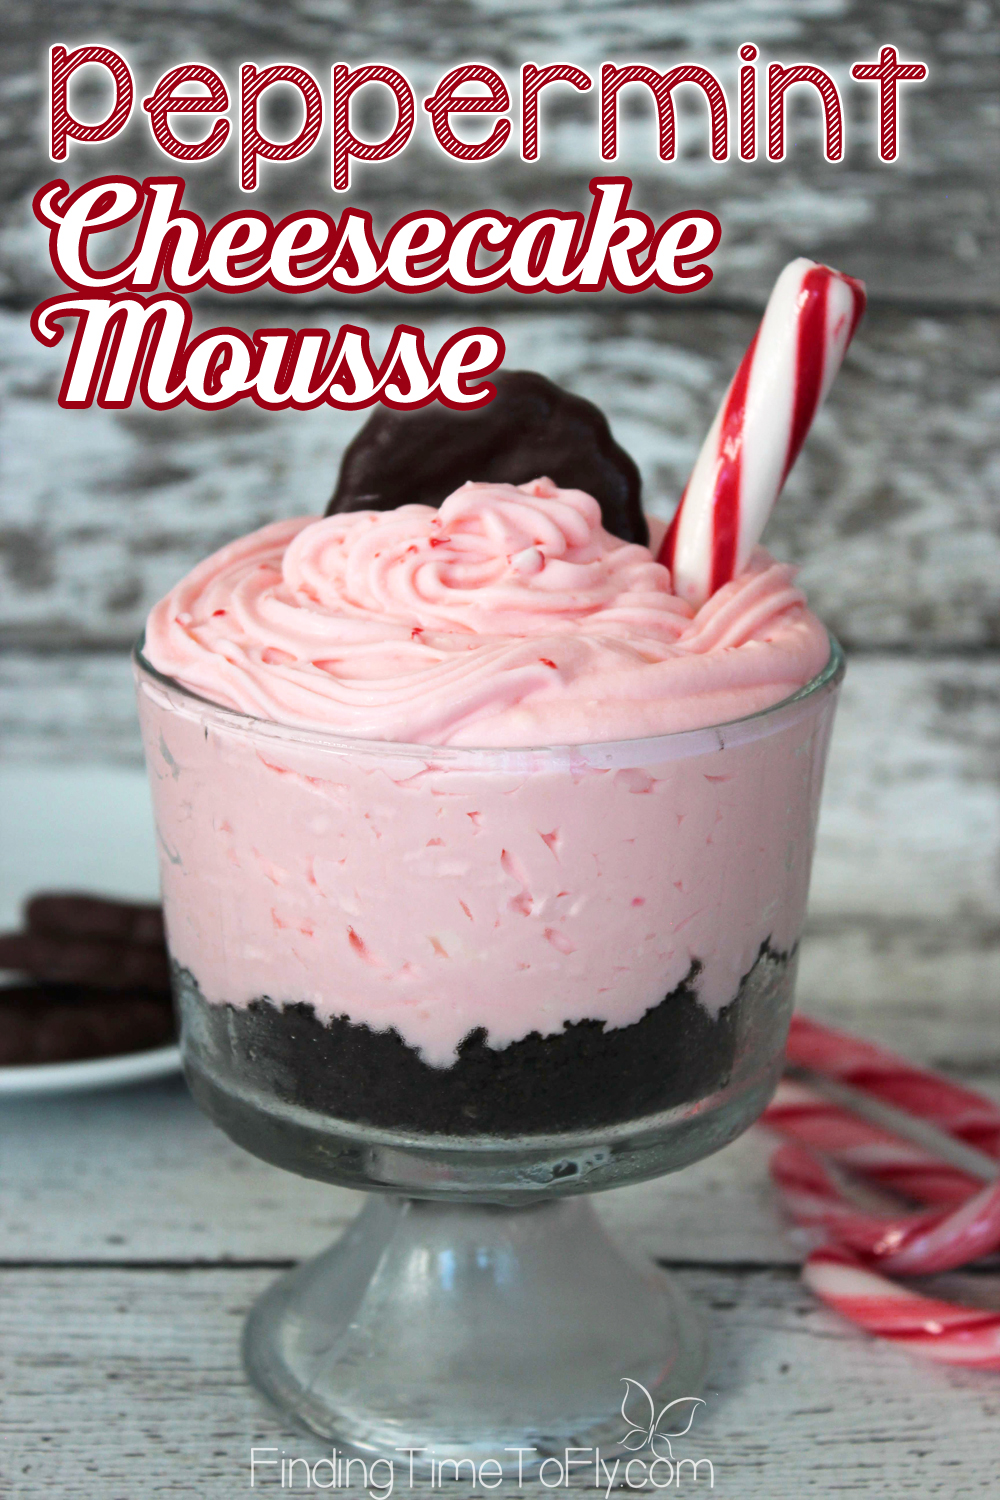 What a beautiful dessert to serve guests! This Peppermint Cheesecake Mousse can be made ahead of time and stored in the refrigerator until ready do serve.